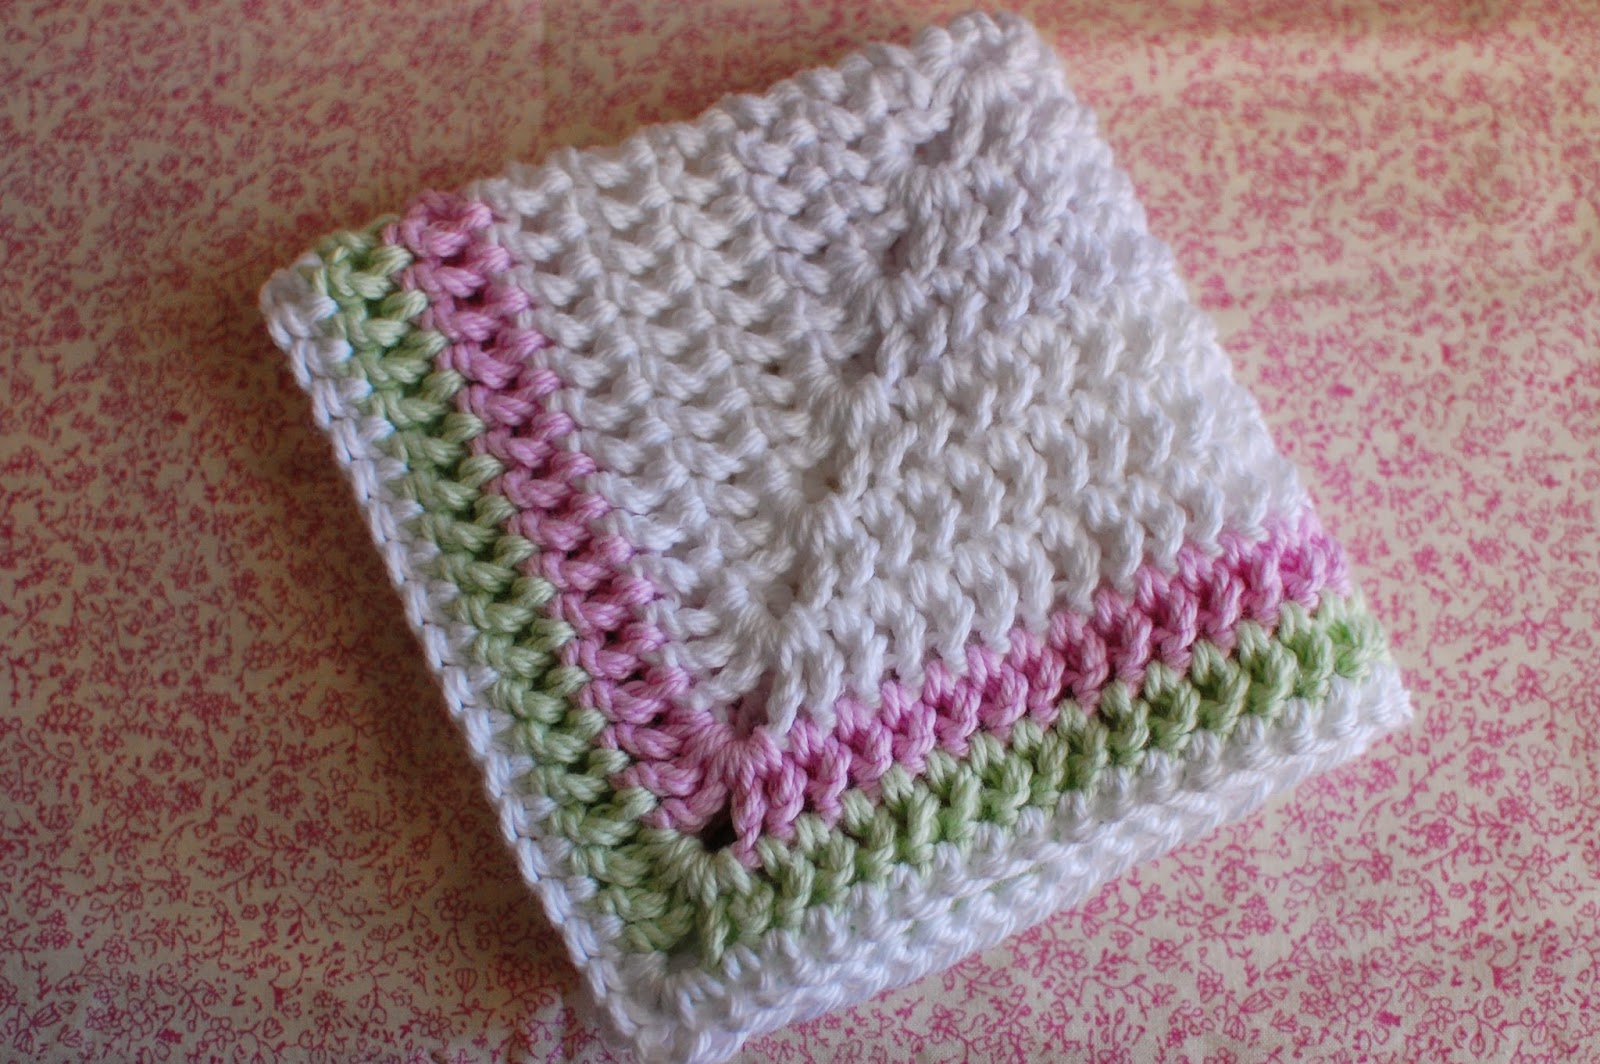 thistlebear: A crocheted facecloth for Mom